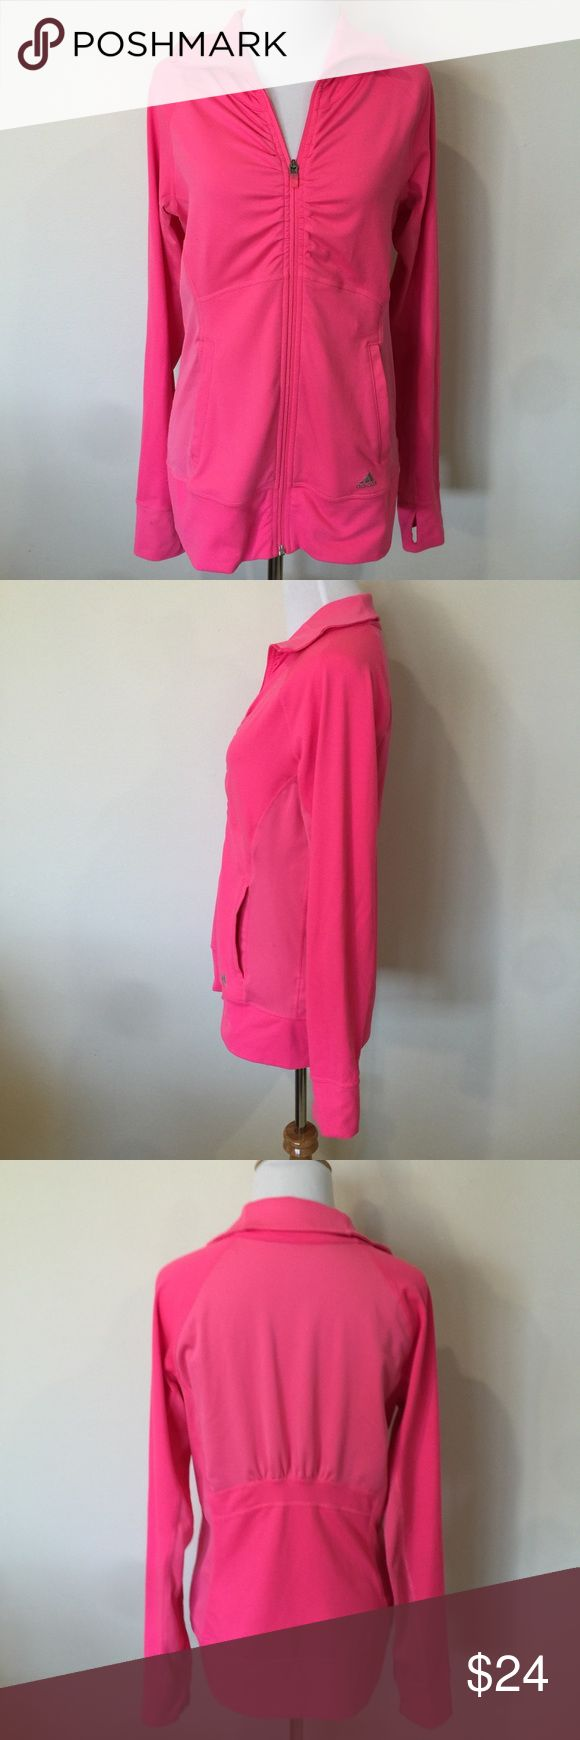 "Adidas Hot Pink Zip Up Sweatshirt Adidas Bright pink zip up. Size small. Some very mild piling on bodice. This jacket is so cute! Underarm measurement is 19 1/4"". Length is 24 3/4"". 92% polyester• 8% spandex. adidas Tops Sweatshirts & Hoodies"